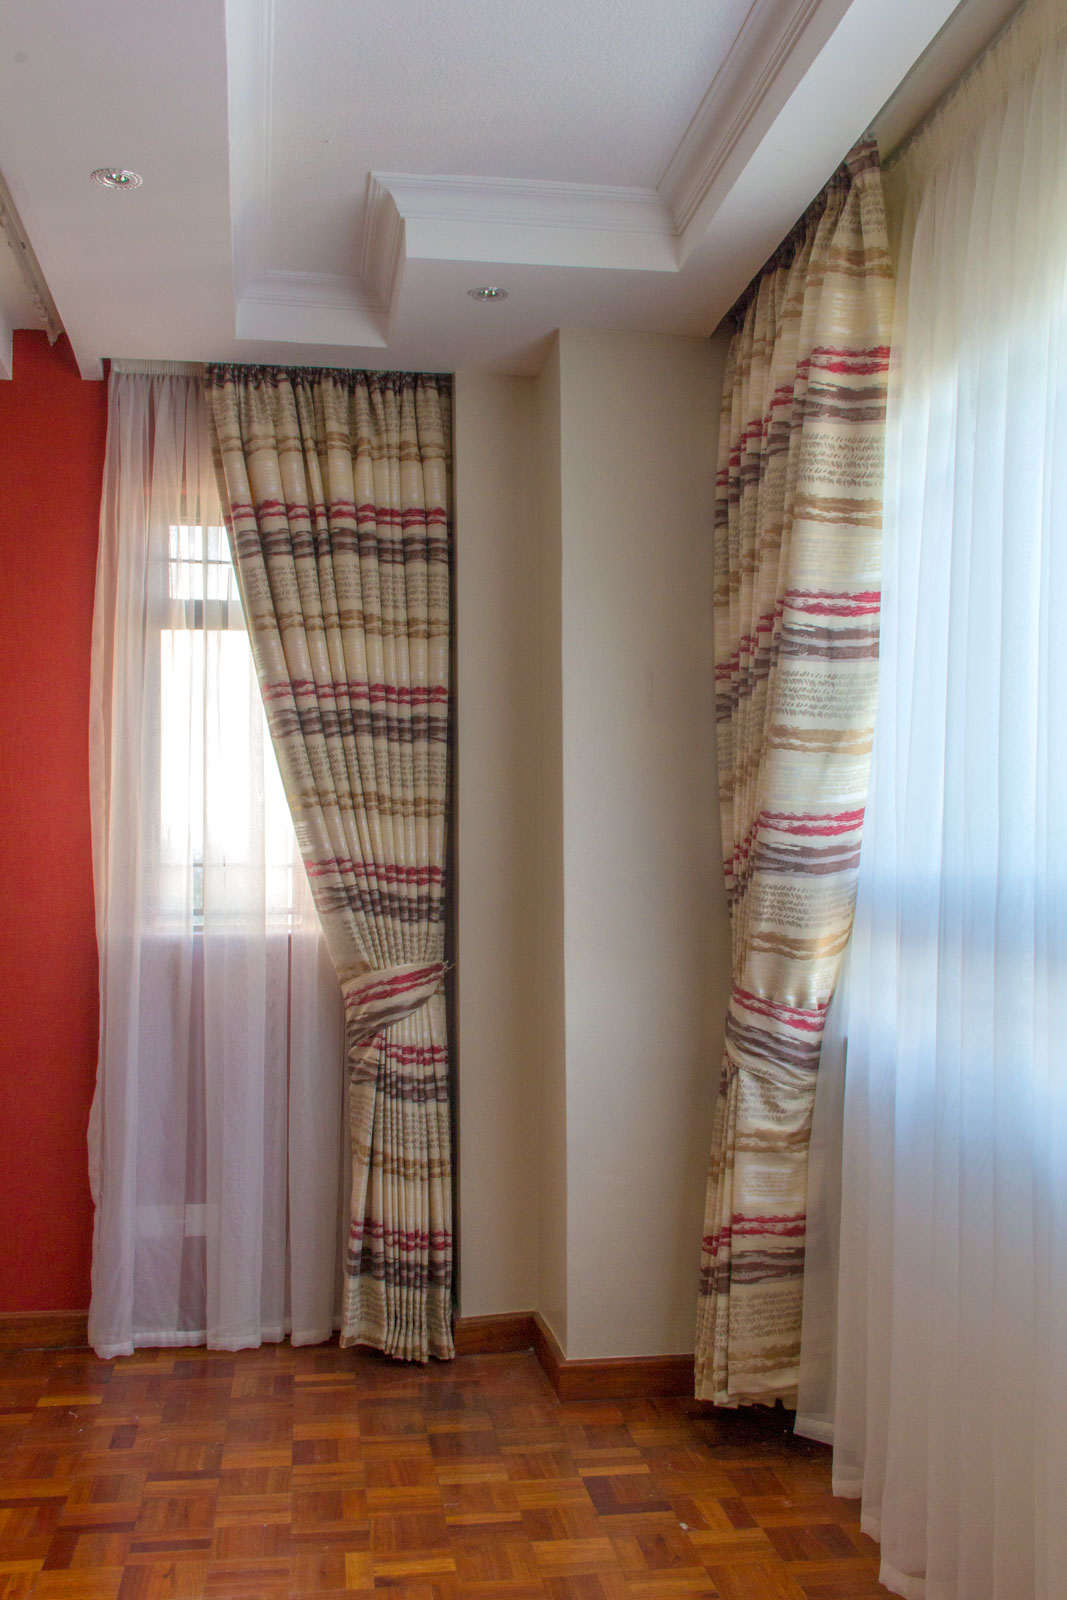 wallpaper, painting, curtains, colour schemes, gypsum ceiling